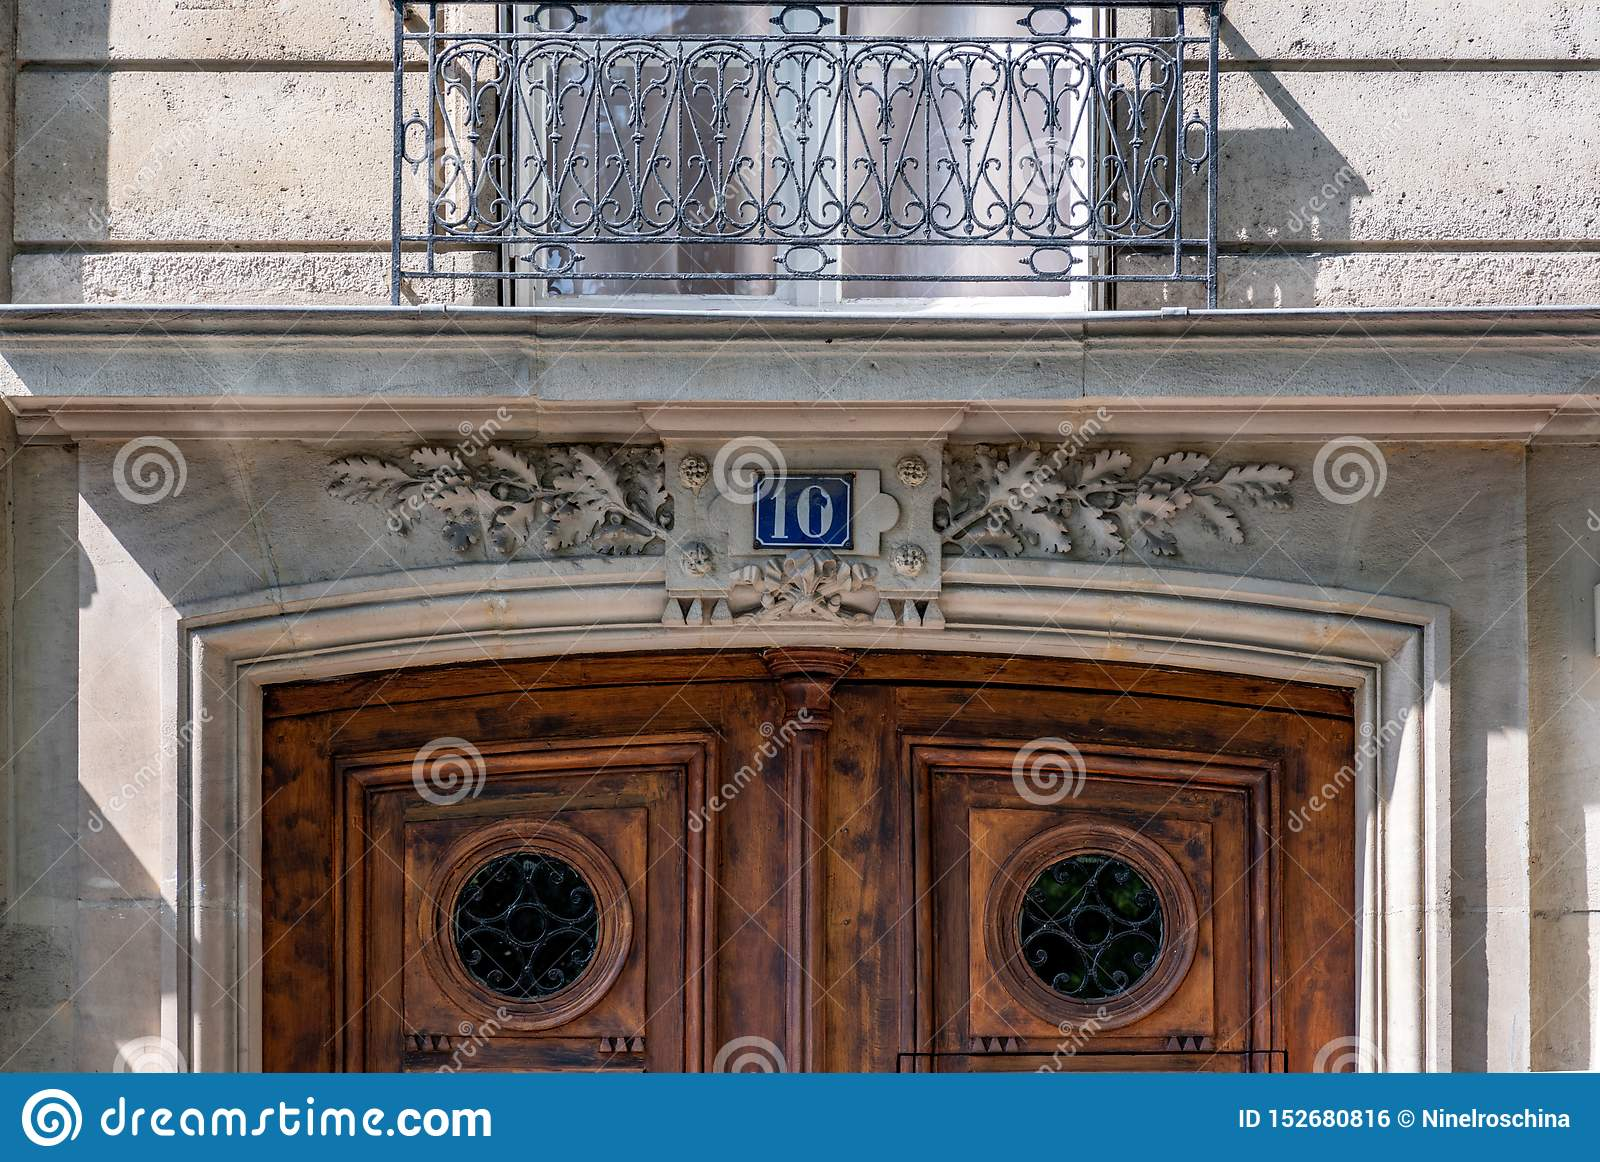 Metal Gratings On Window Above Top Part Of Vintage Wooden Door With Framed Panels And Round Windows Protected By Ornate Lattice Stock Photo Image Of Facade Baroque 152680816